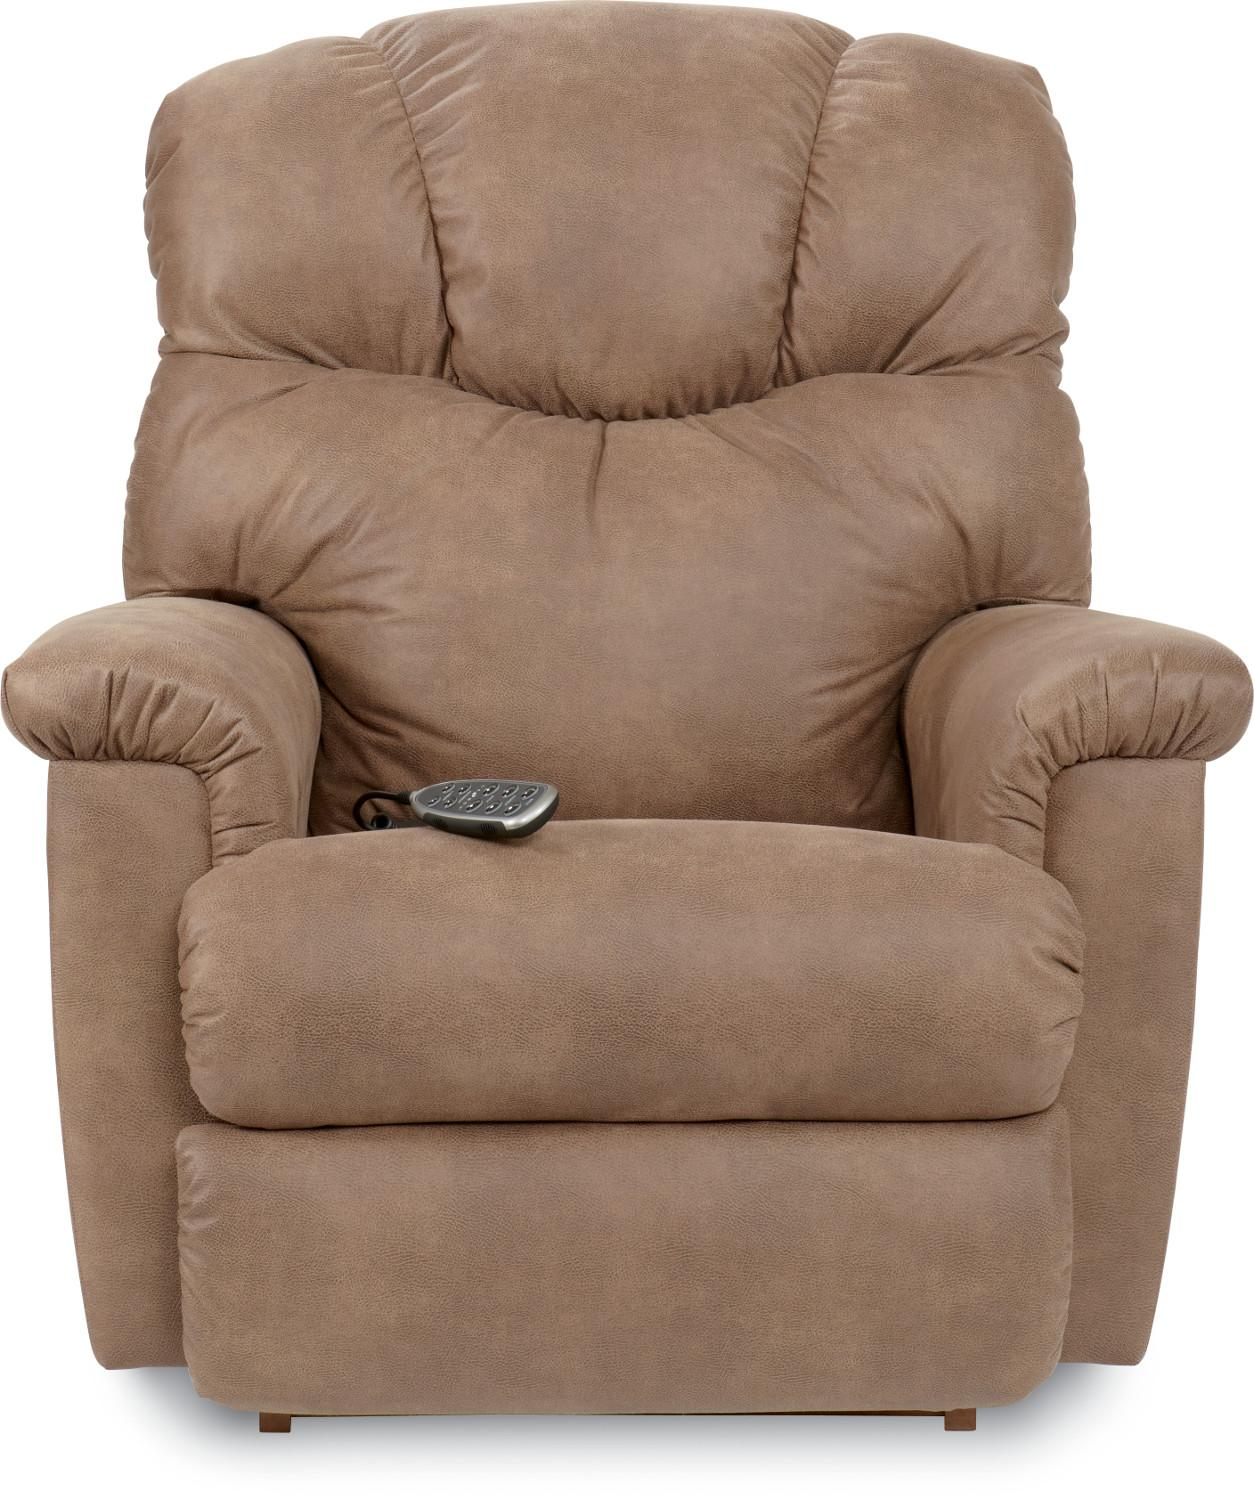 Lancer Power Wall Recliner by La-Z-Boy at SuperStore